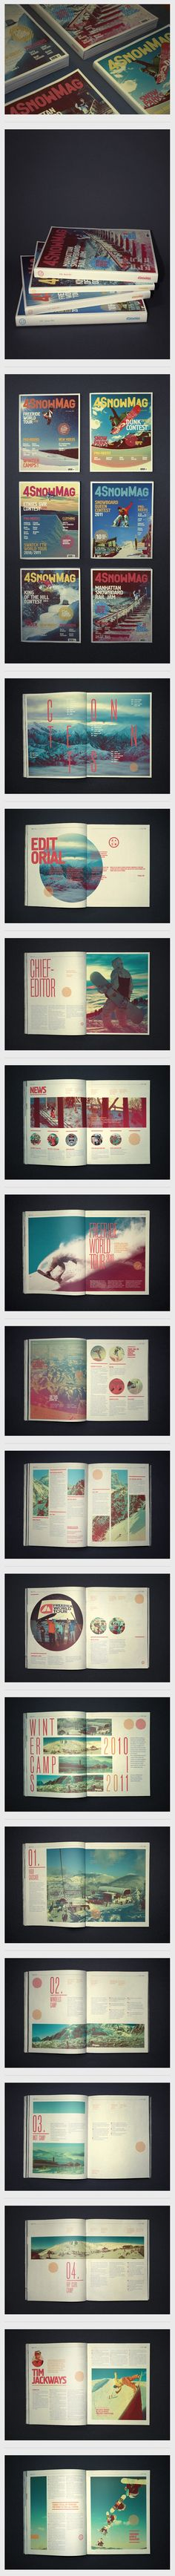 4SnowMag on Behance